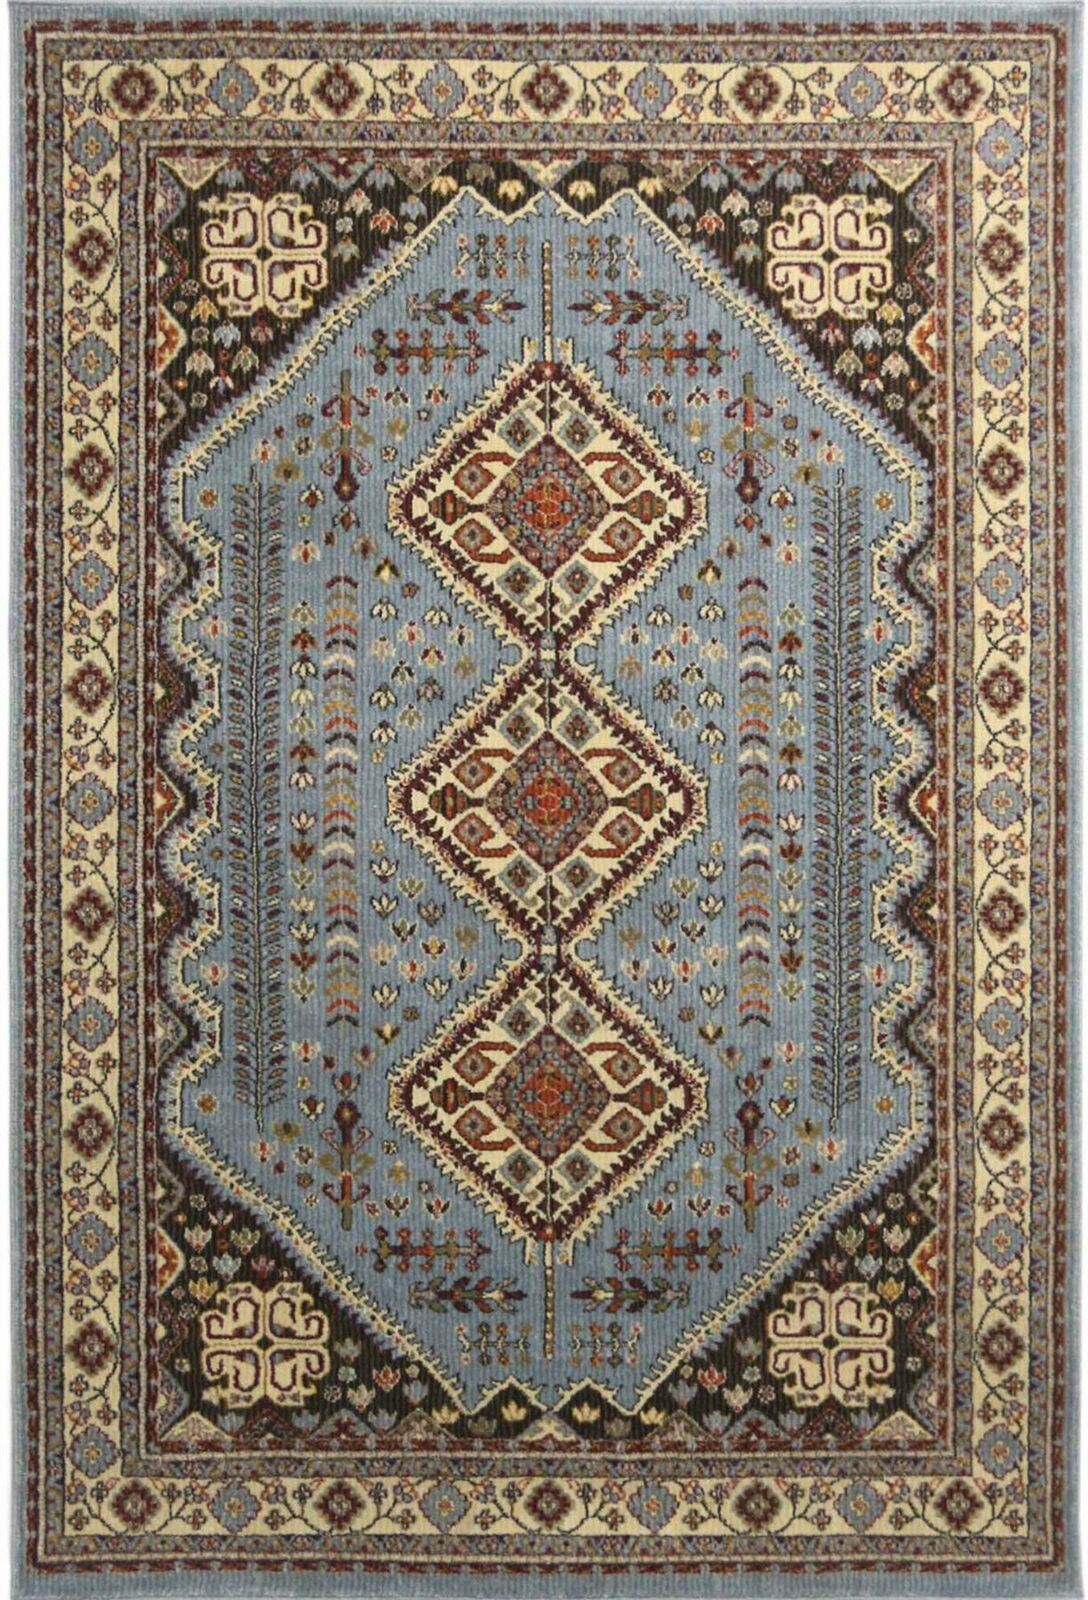 A2z Large Blue Rugs Terracotta Rug Traditional Persian